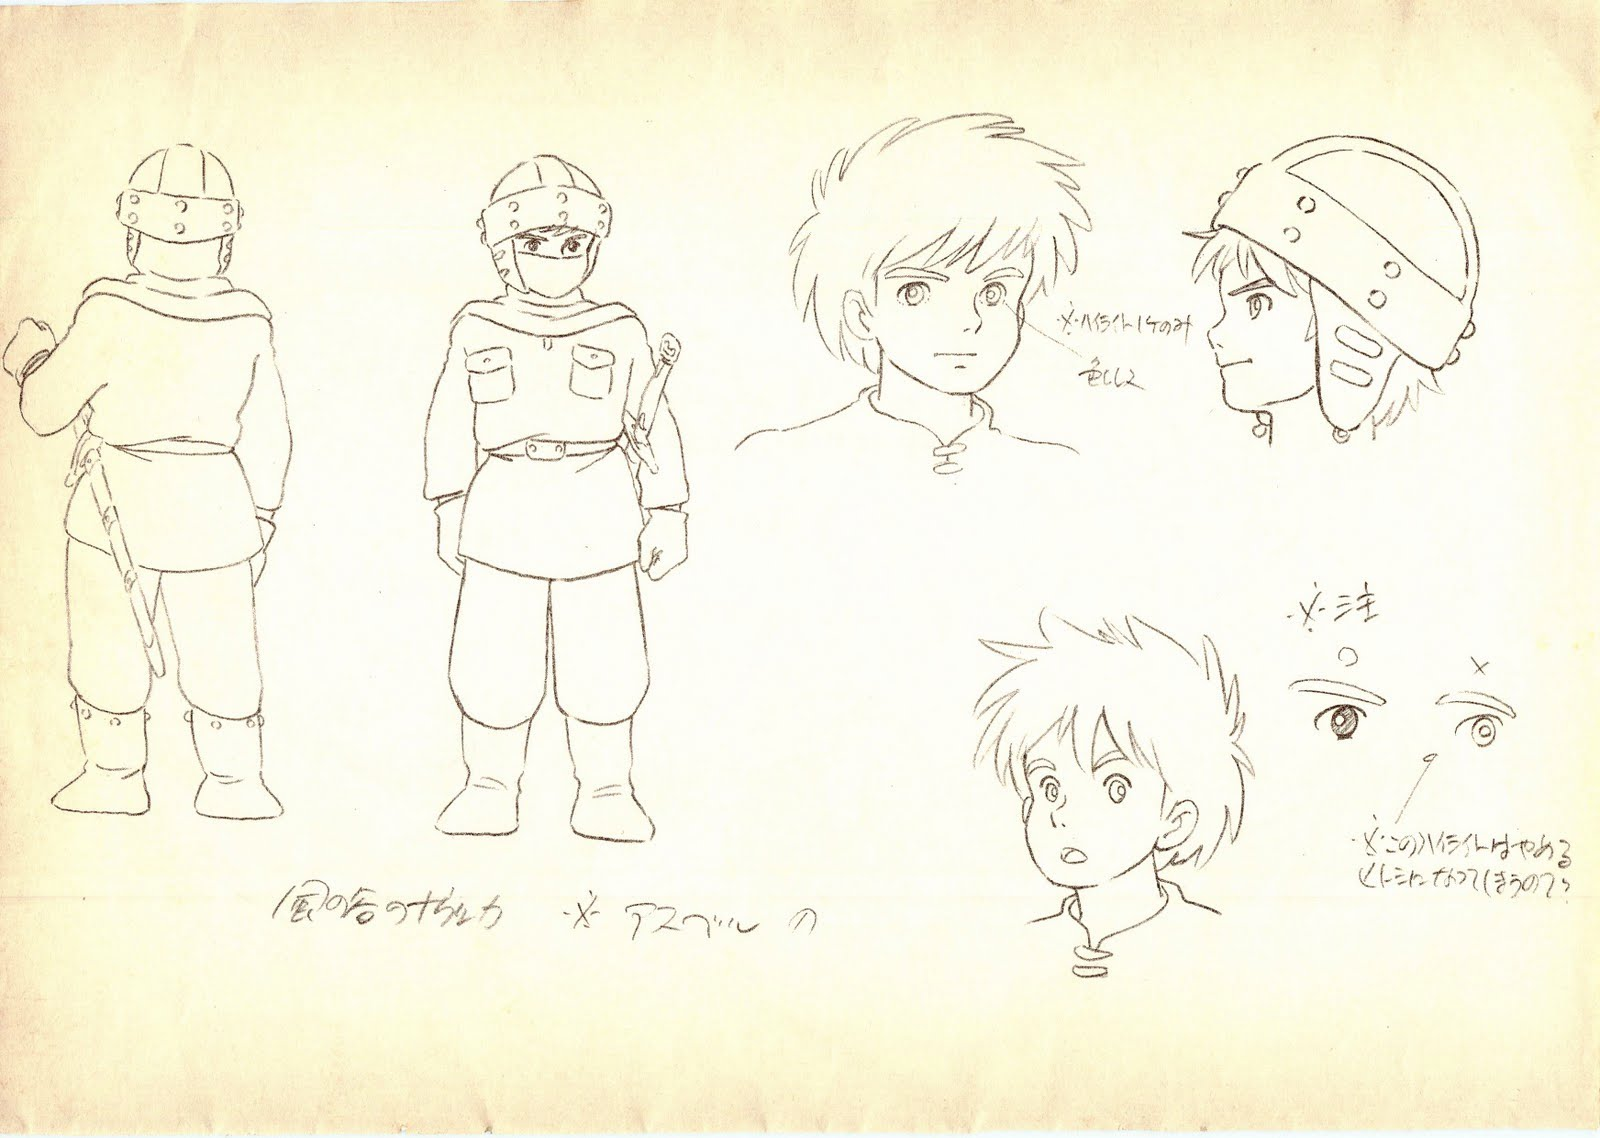 nausicaa_of_the_valley_of_the_wind_concept_art_character_07.jpg